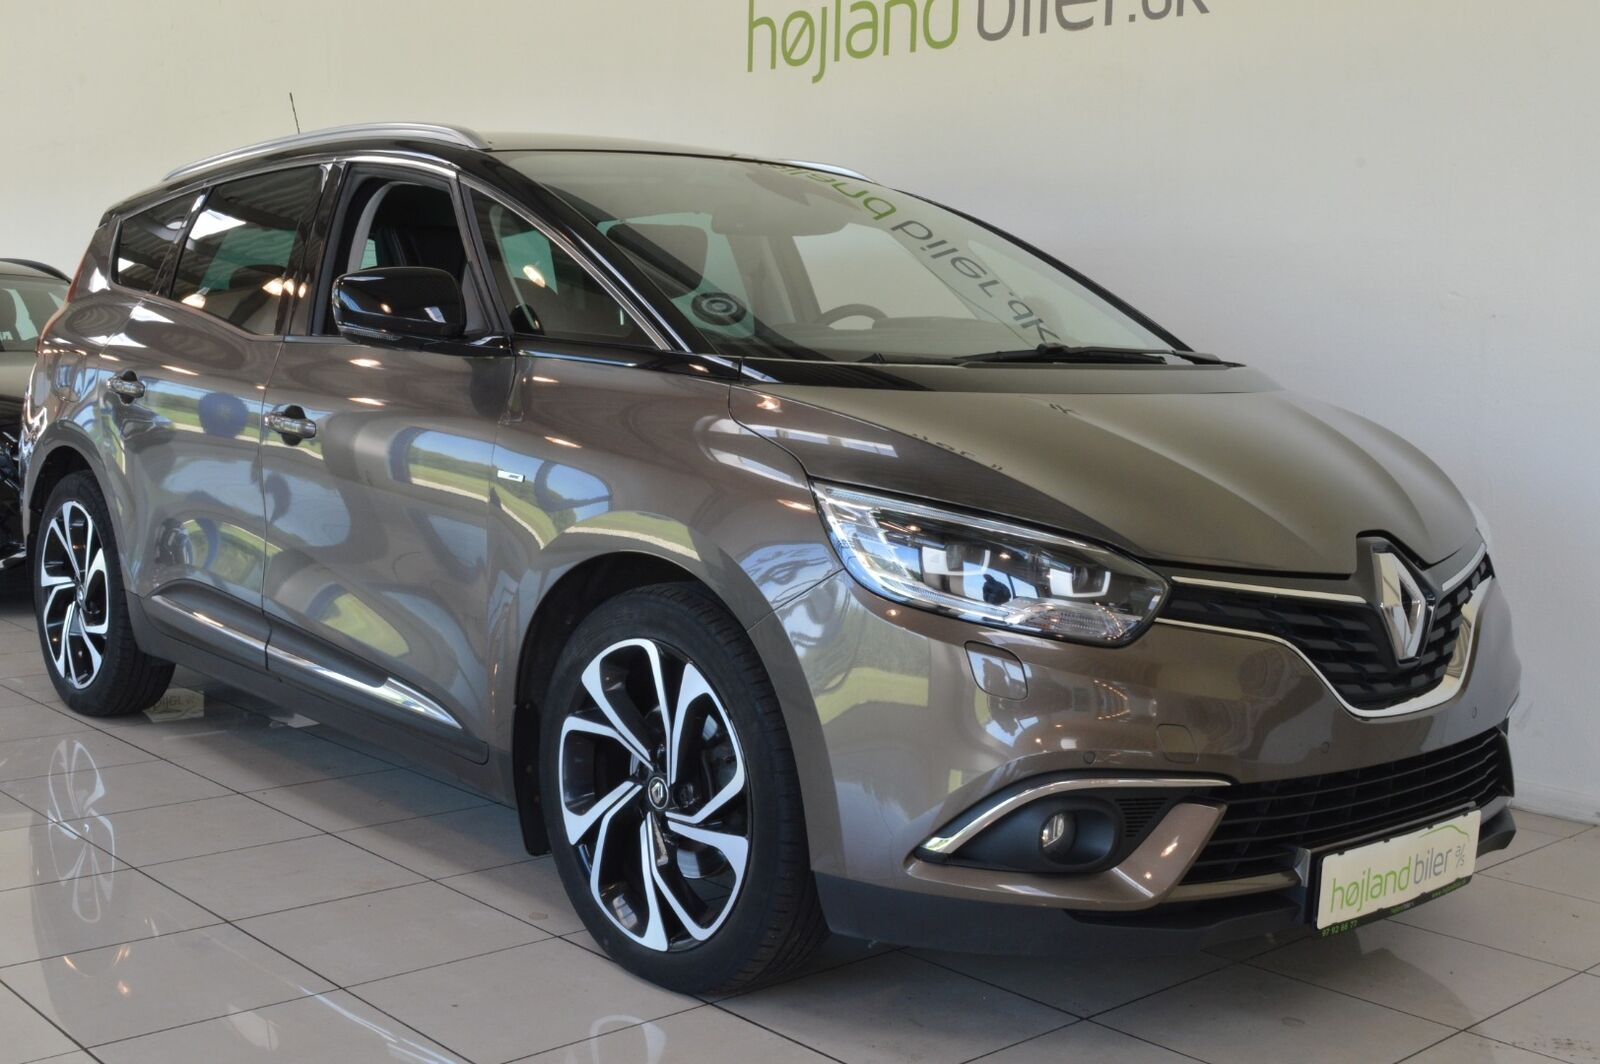 Renault Grand Scenic IV 1,6 dCi 160 Bose Edition EDC 7prs 5d - 254.900 kr.